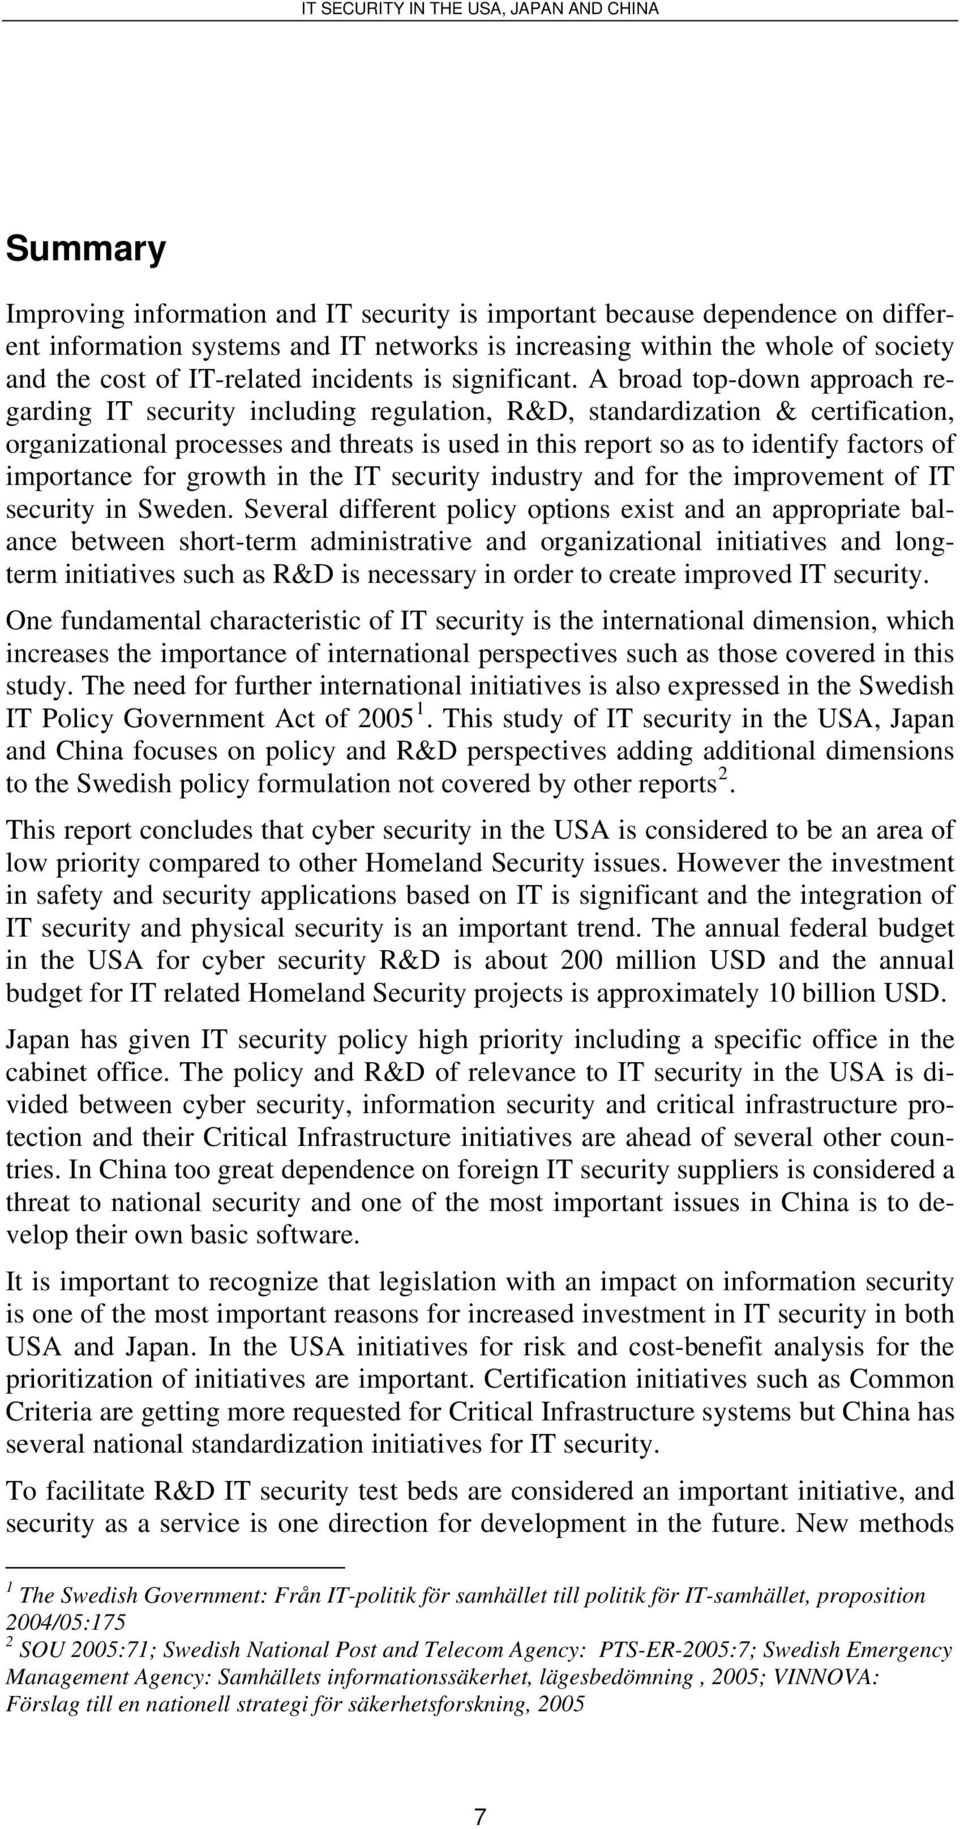 A broad top-down approach regarding IT security including regulation, R&D, standardization & certification, organizational processes and threats is used in this report so as to identify factors of